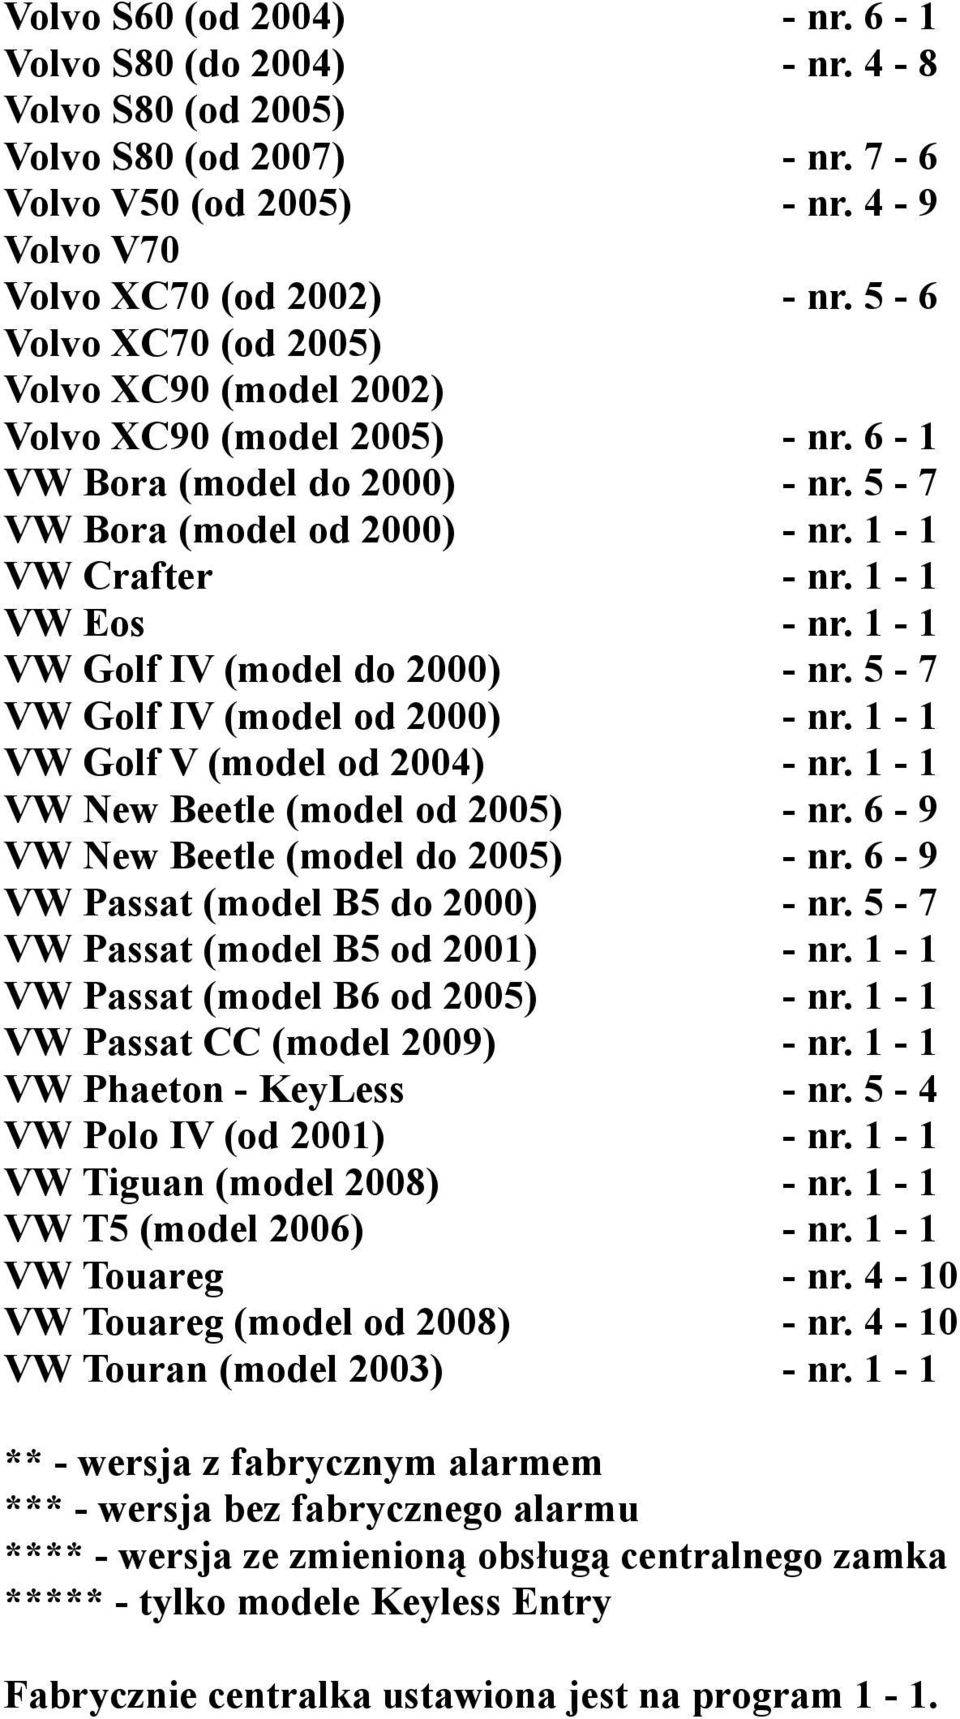 1-1 VW Golf IV (model do 2000) - nr. 5-7 VW Golf IV (model od 2000) - nr. 1-1 VW Golf V (model od 2004) - nr. 1-1 VW New Beetle (model od 2005) - nr. 6-9 VW New Beetle (model do 2005) - nr.